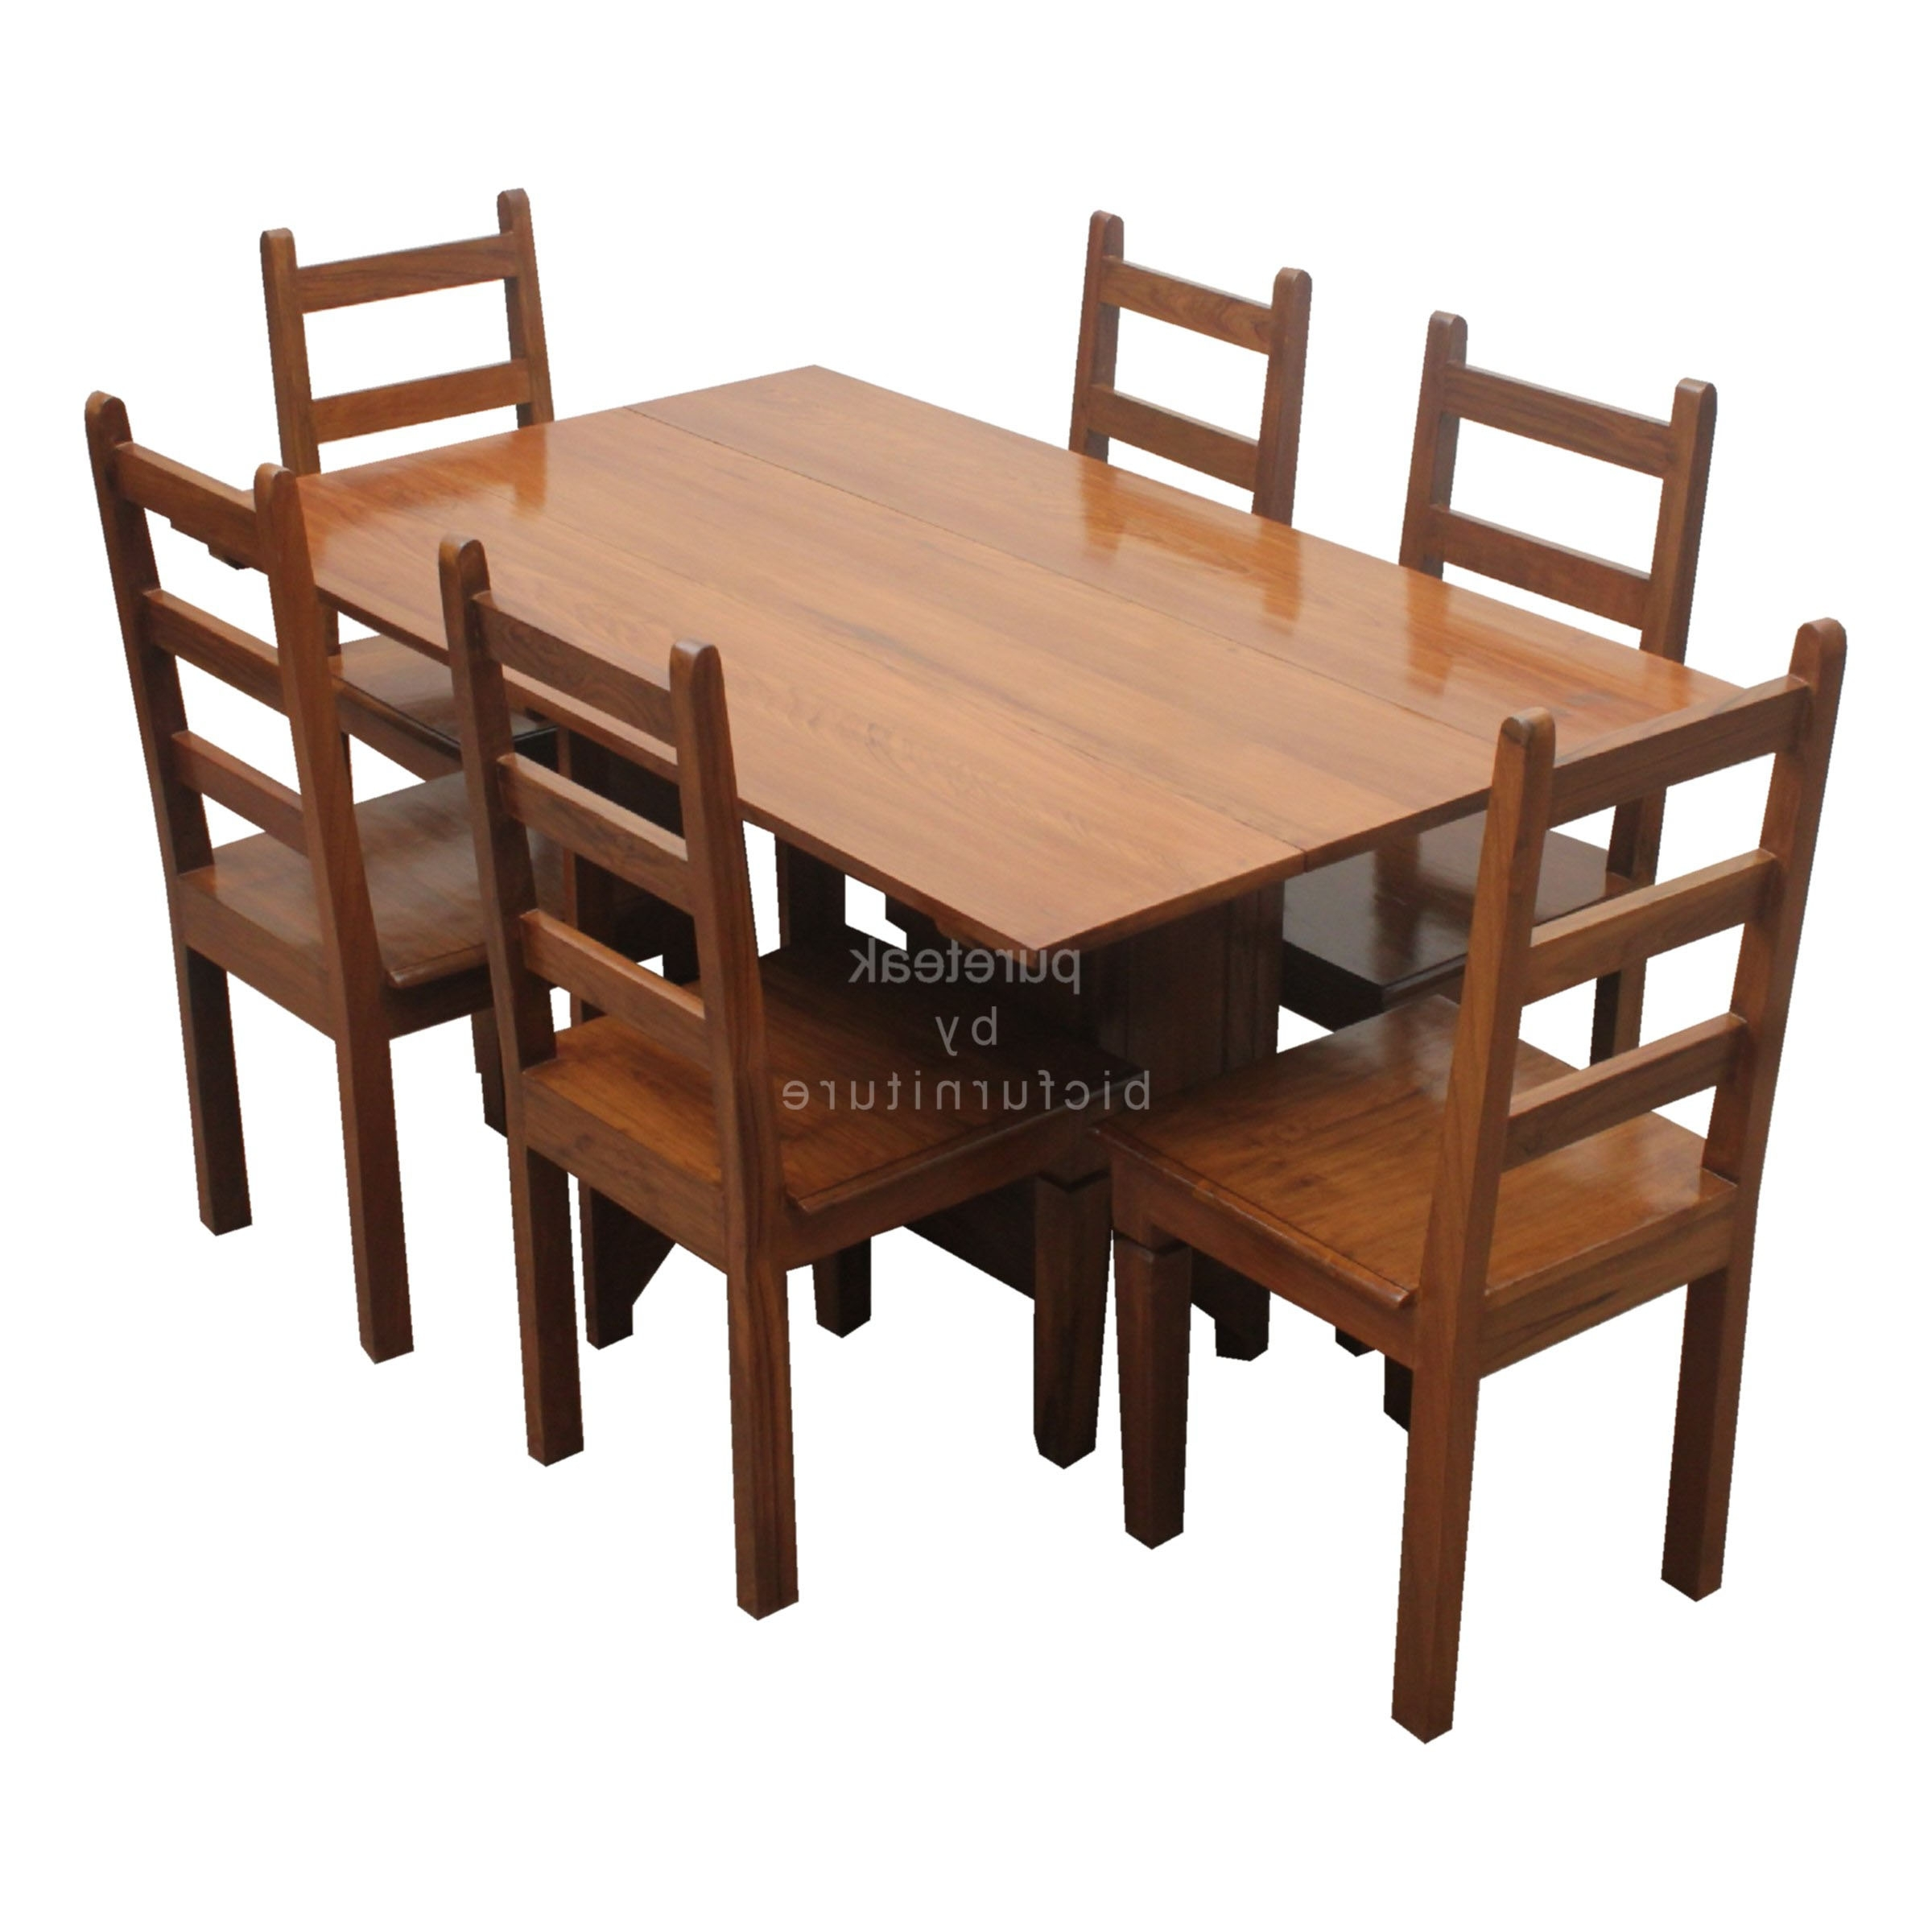 Best And Newest Six Seater Dinning Table Set In Teak Wood (Twd 14) Details (View 2 of 25)